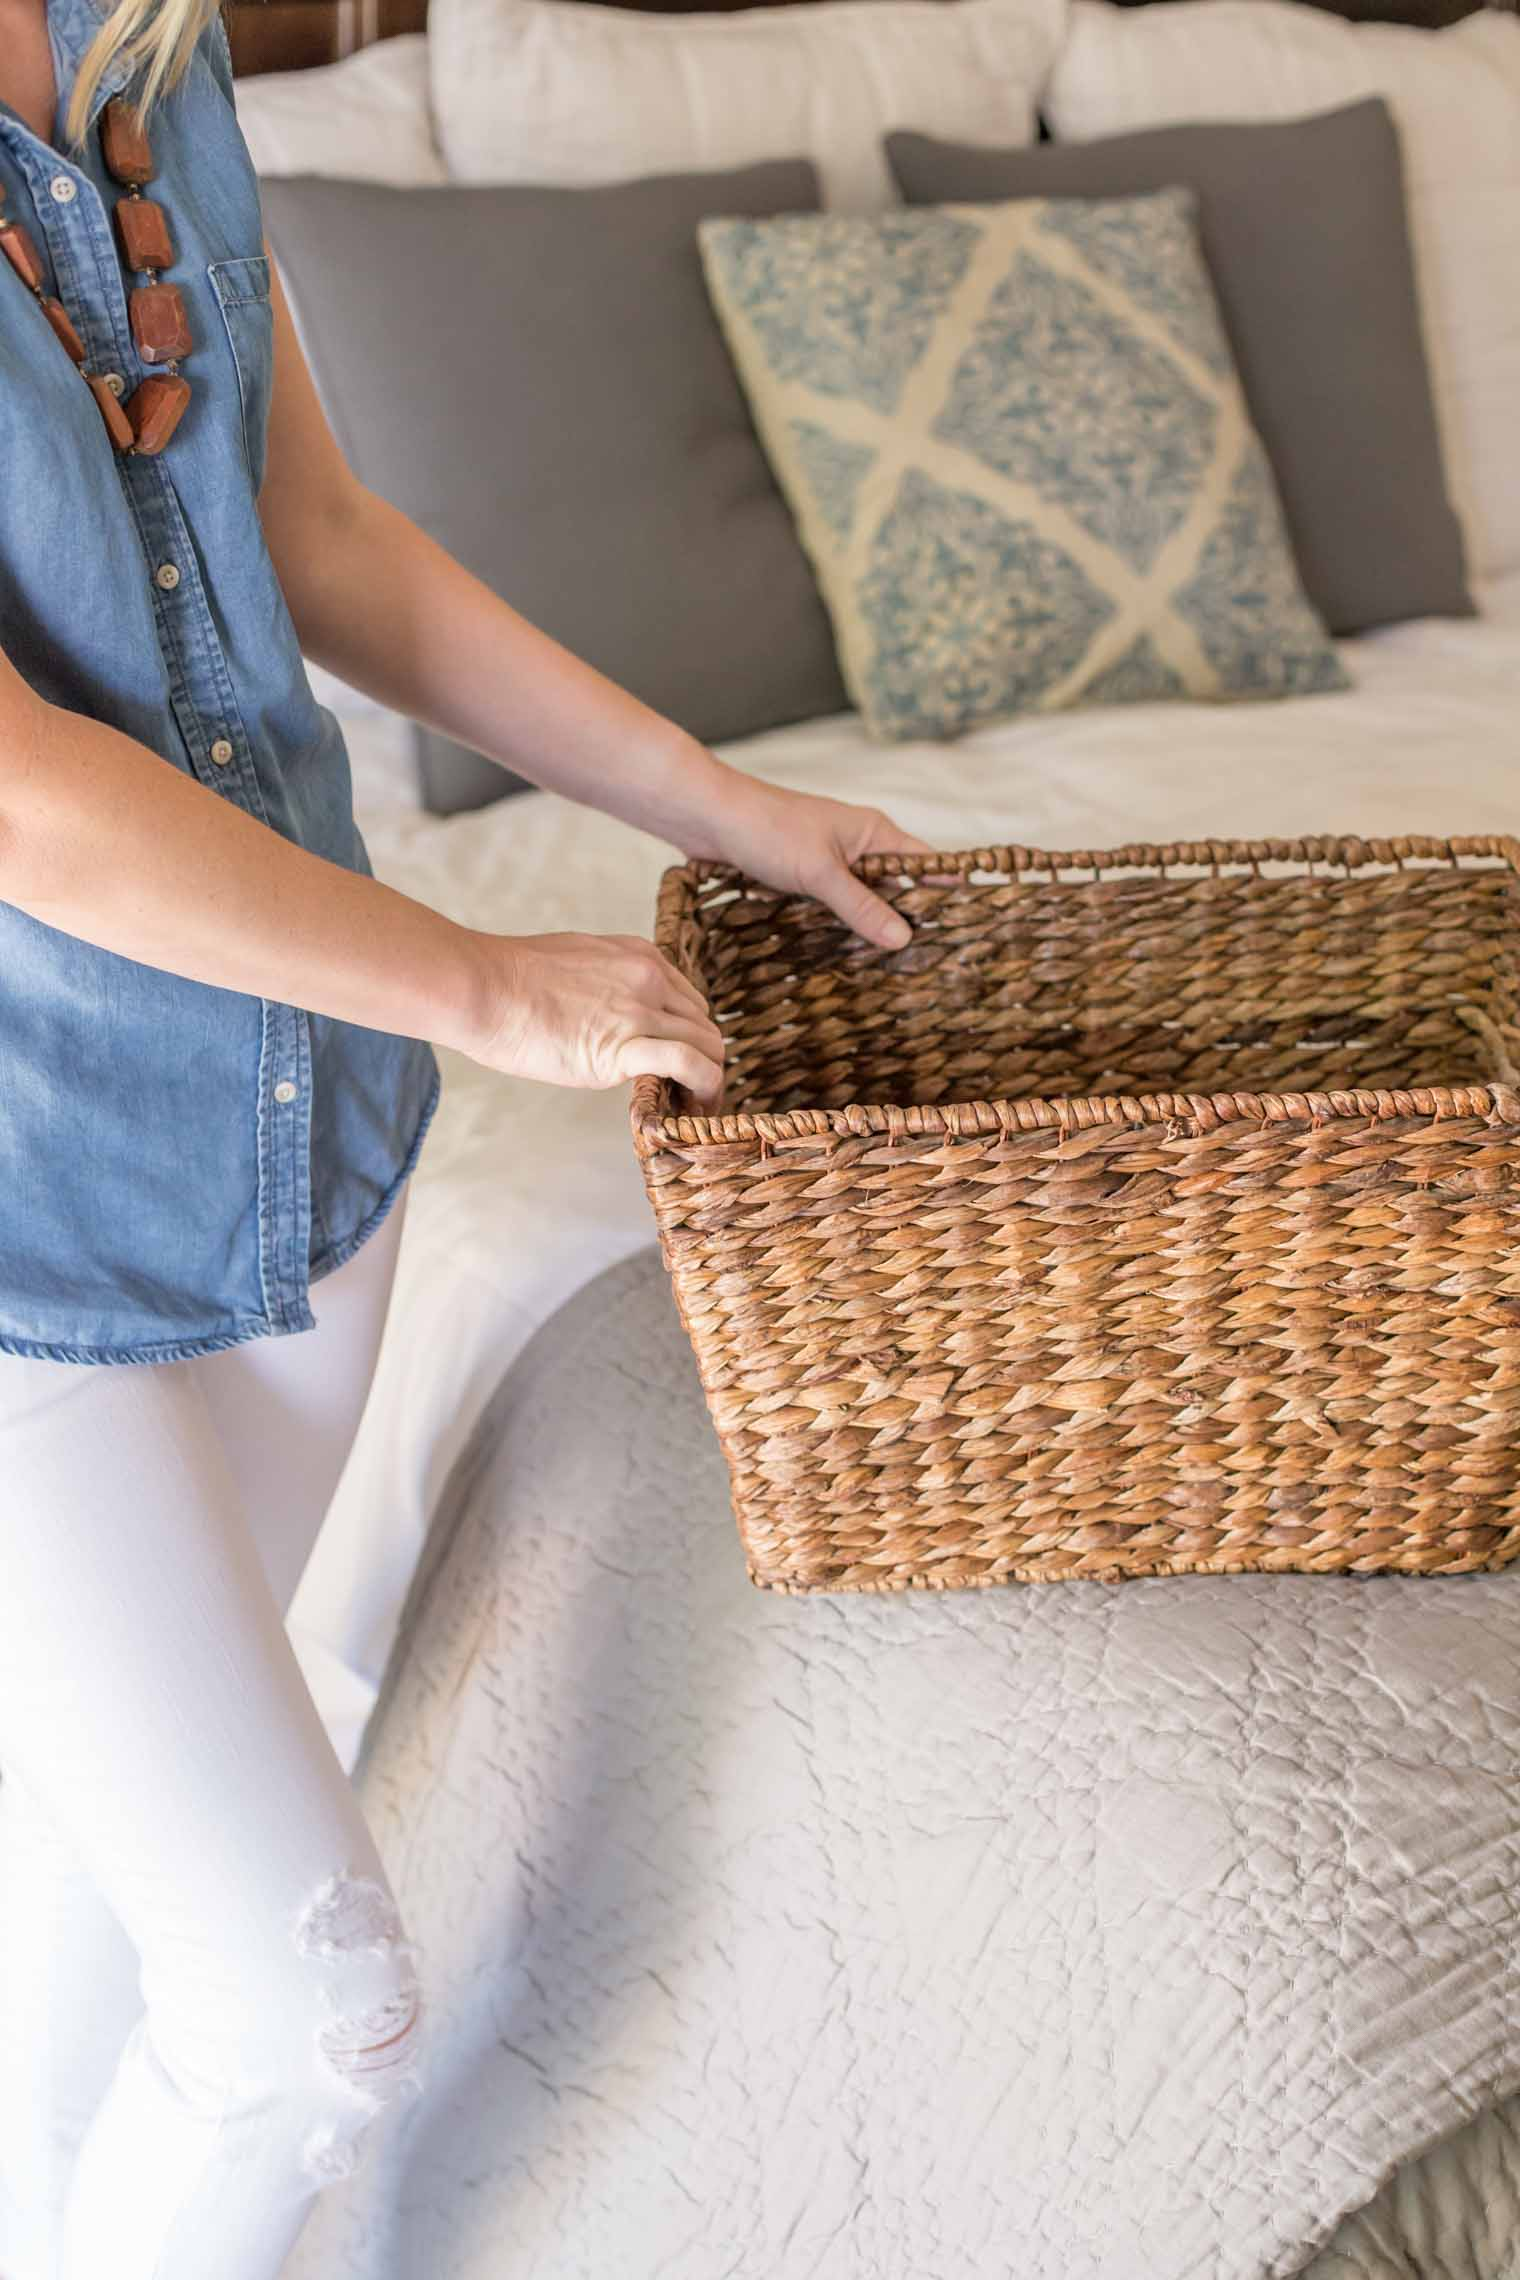 A simple but effective plan for keeping the daily clutter that collects in my house under control, using a basket and 15 minutes a day.